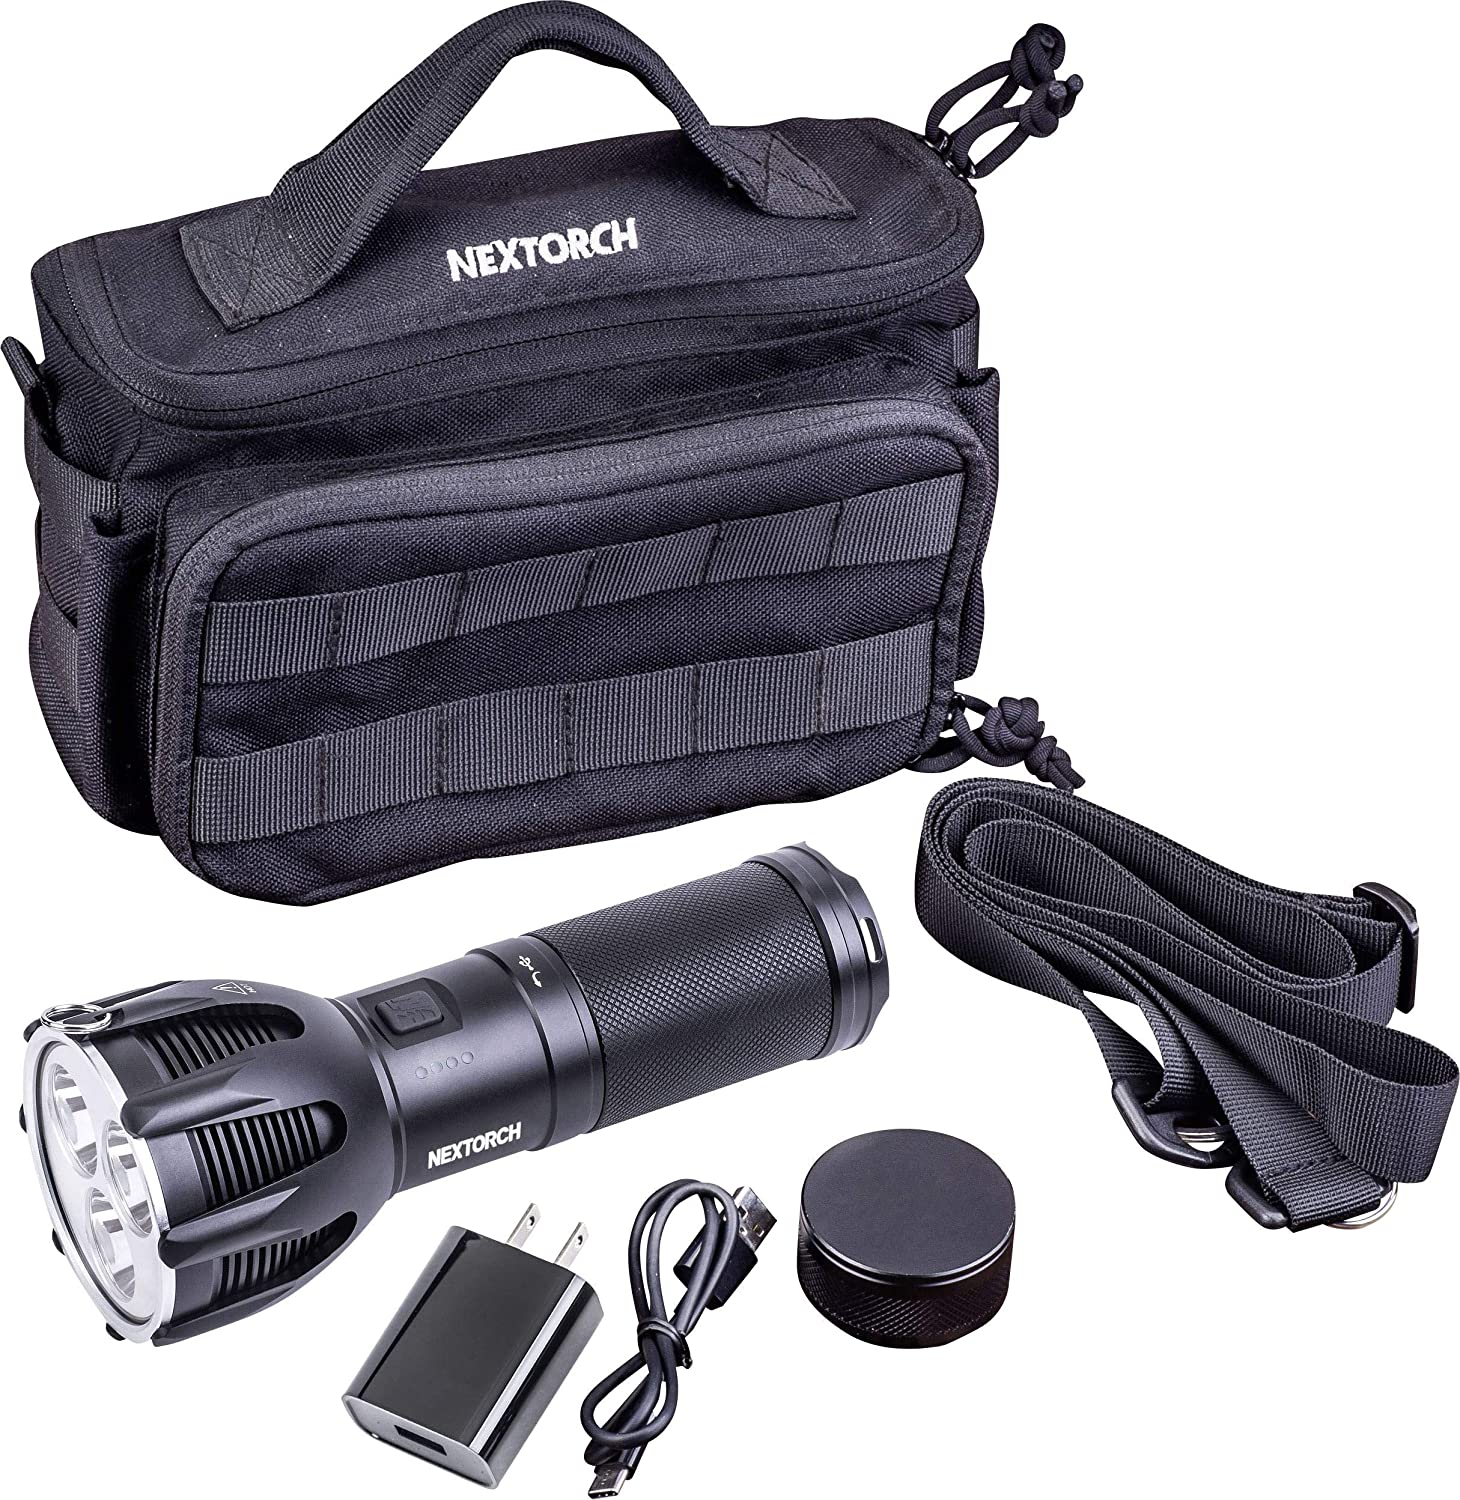 NEXTORCH High Performance LED Taschenlampe Saint Torch 30 mit 5600 Lumen (TM)